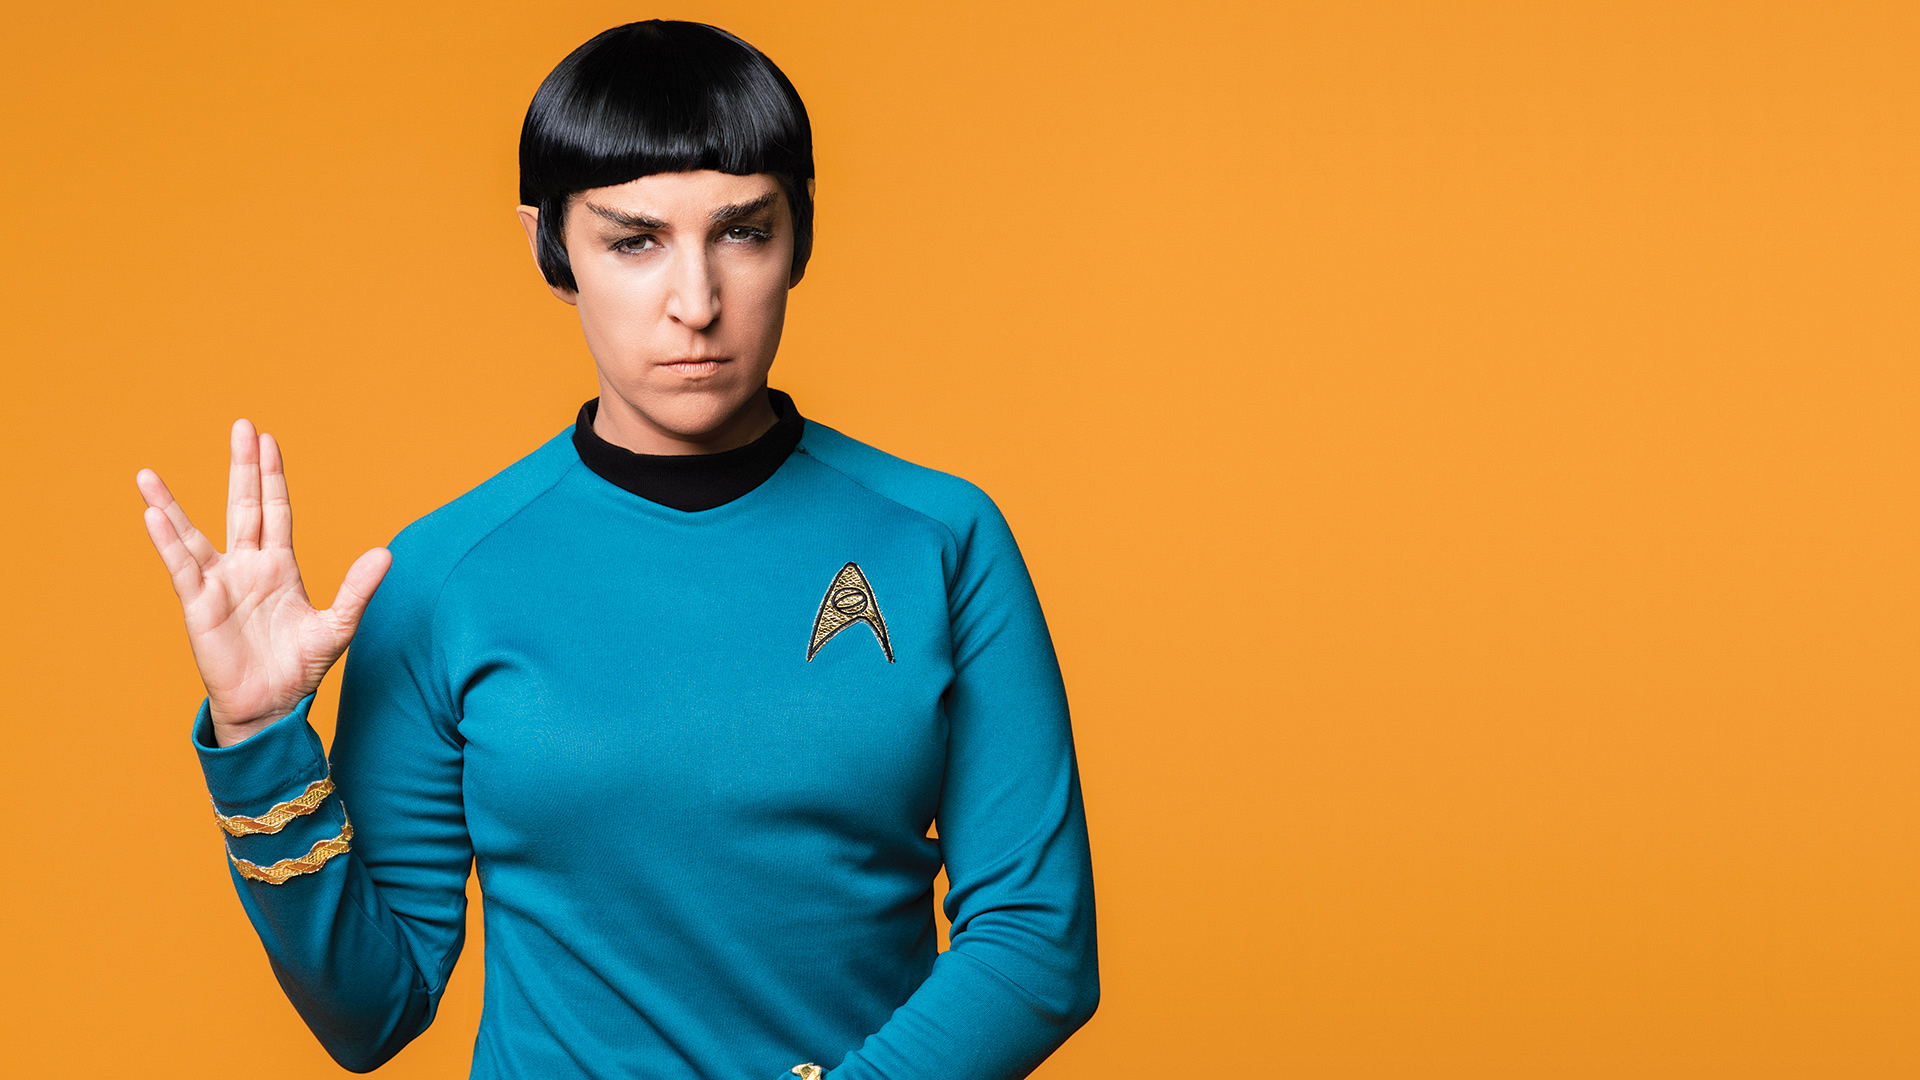 Mayim Bialik in a classic Star Trek look